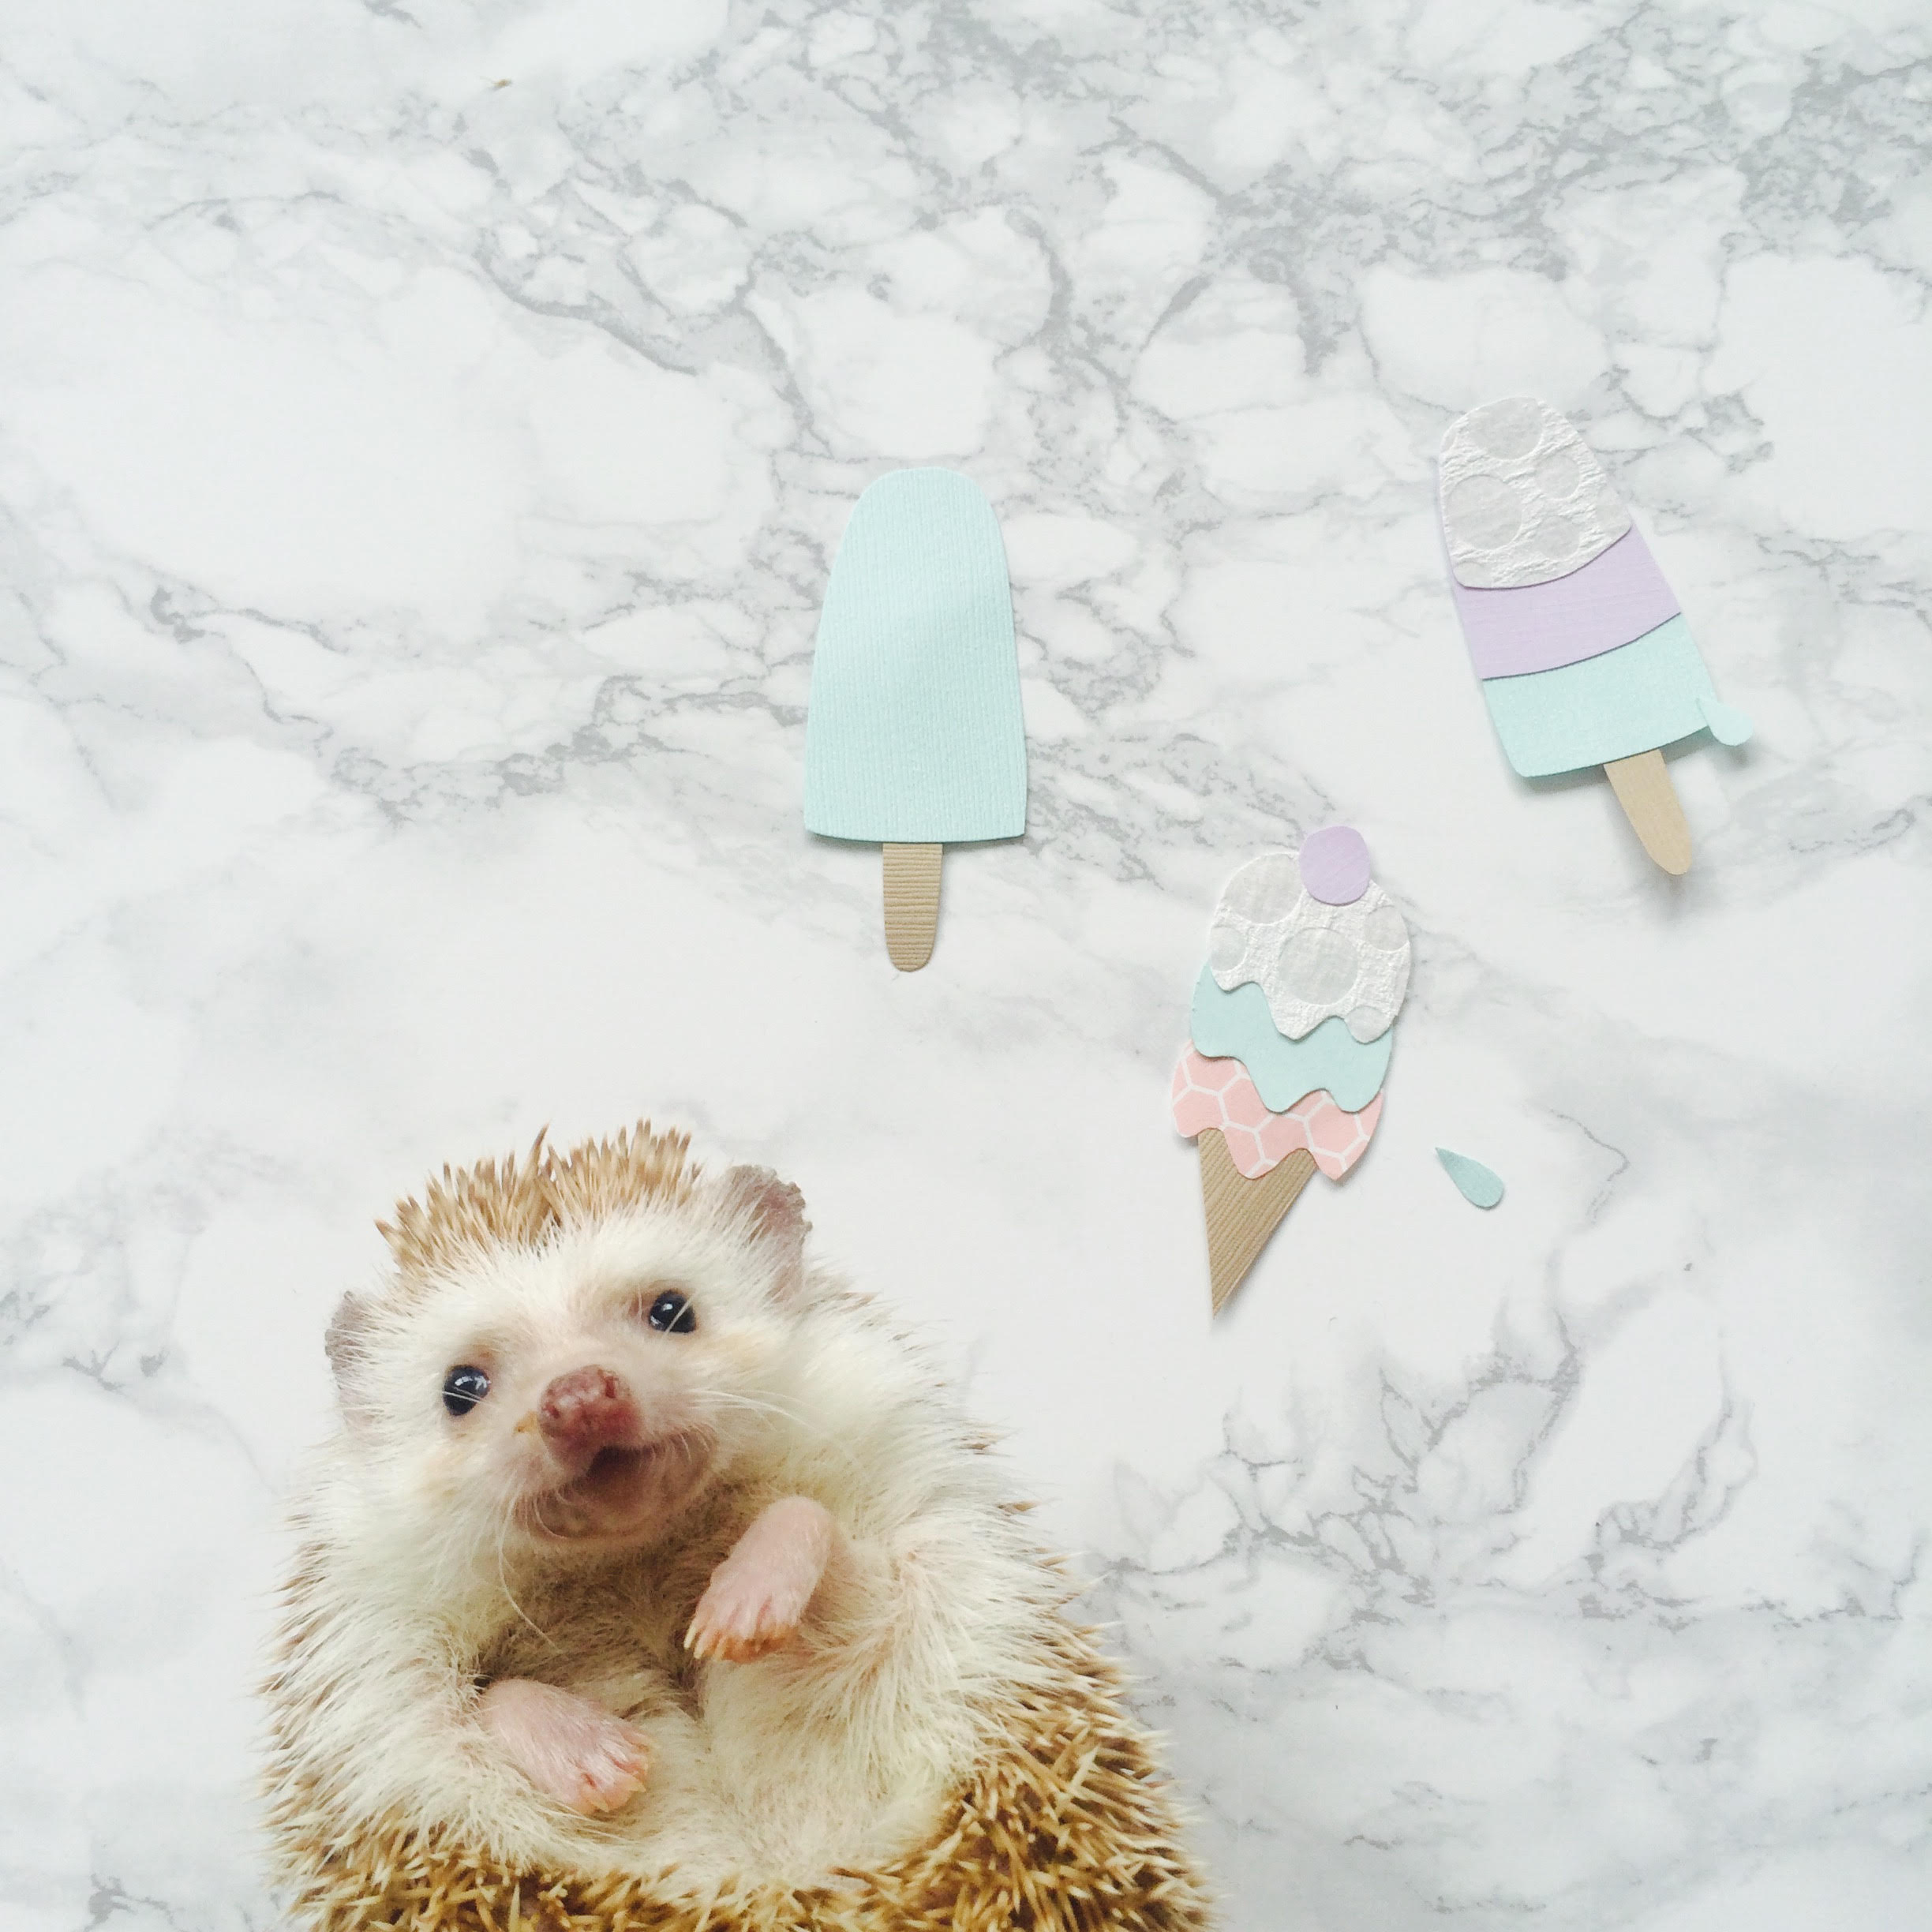 Amelia Hedgehog the hedgehog has a taste for ice cream and paper art!